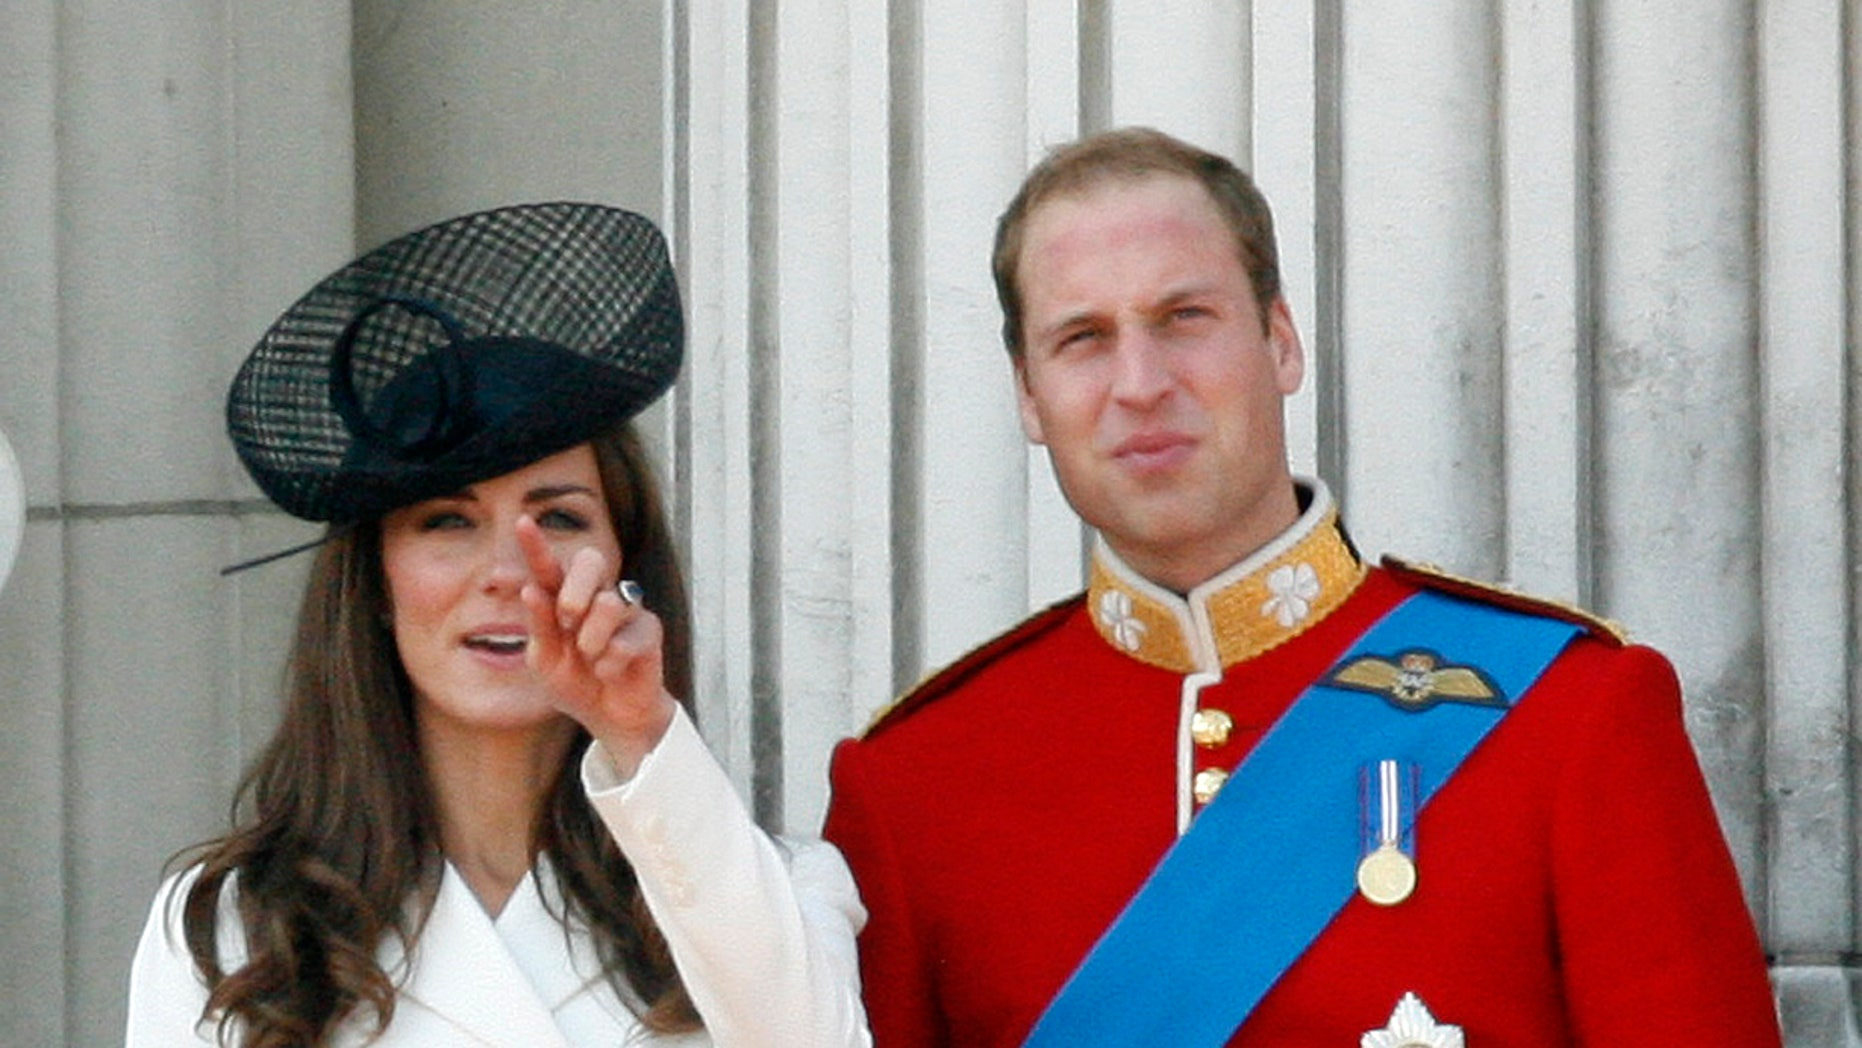 June 11, 2011. Prince William, Duke of Cambridge, right, his wife Catherine, Duchess of Cambridge, react on the balcony of Buckingham Palace after returning from the Trooping the Colour ceremony to mark the Queen's official birthday in London.